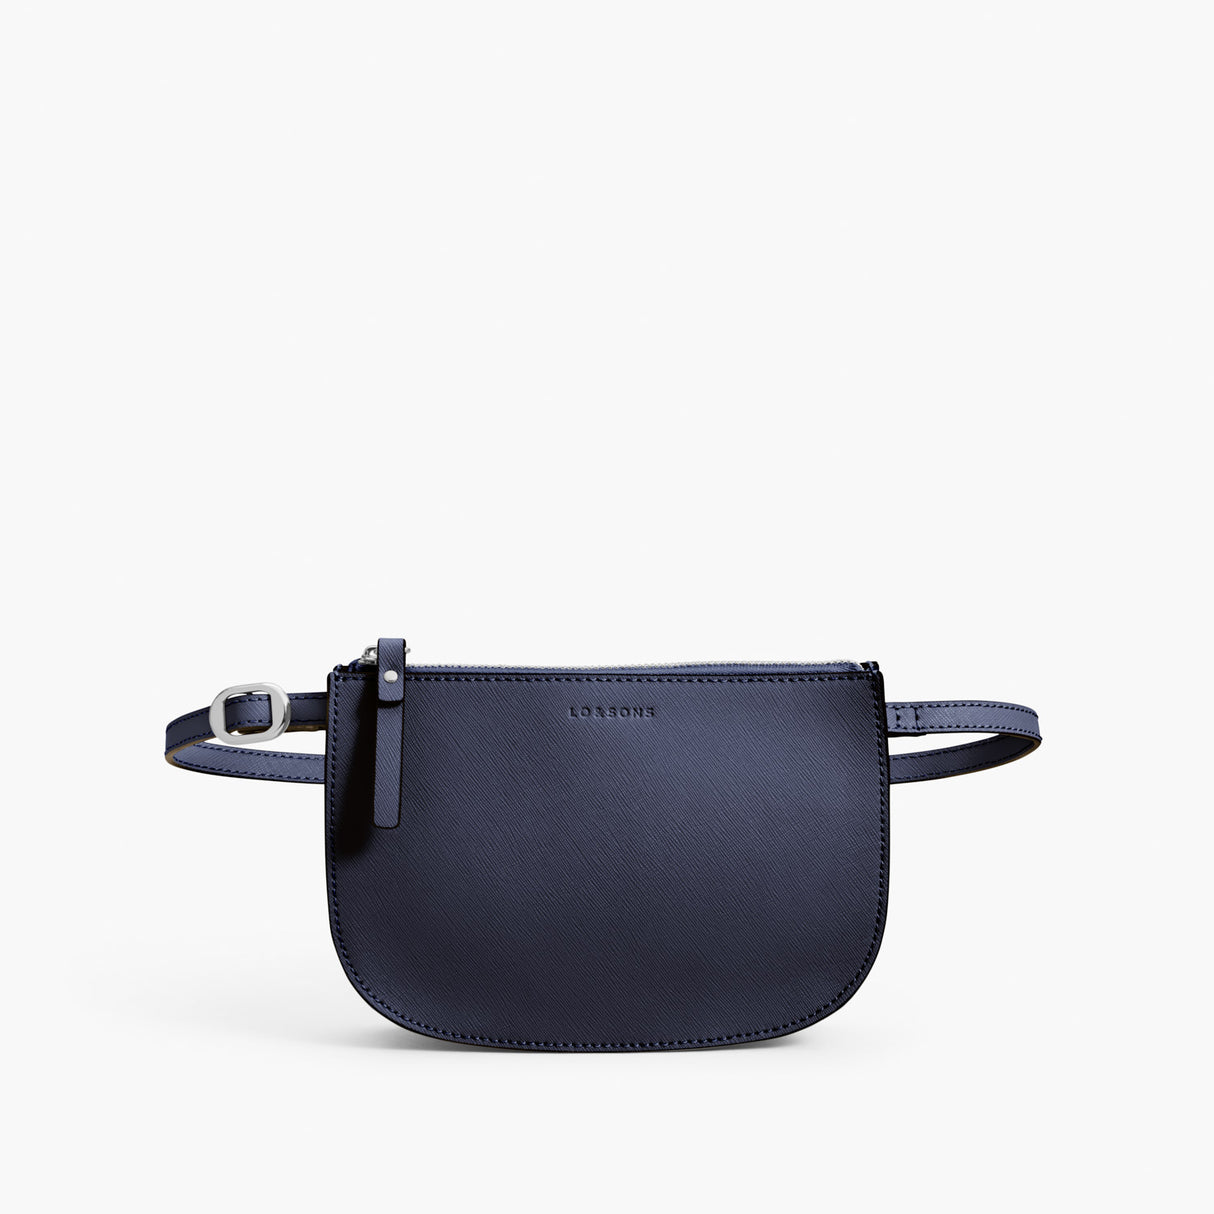 Front Beltbag - Waverley 2 - Saffiano Leather - Deep Navy / Silver / Azure - Crossbody Bag - Lo & Sons